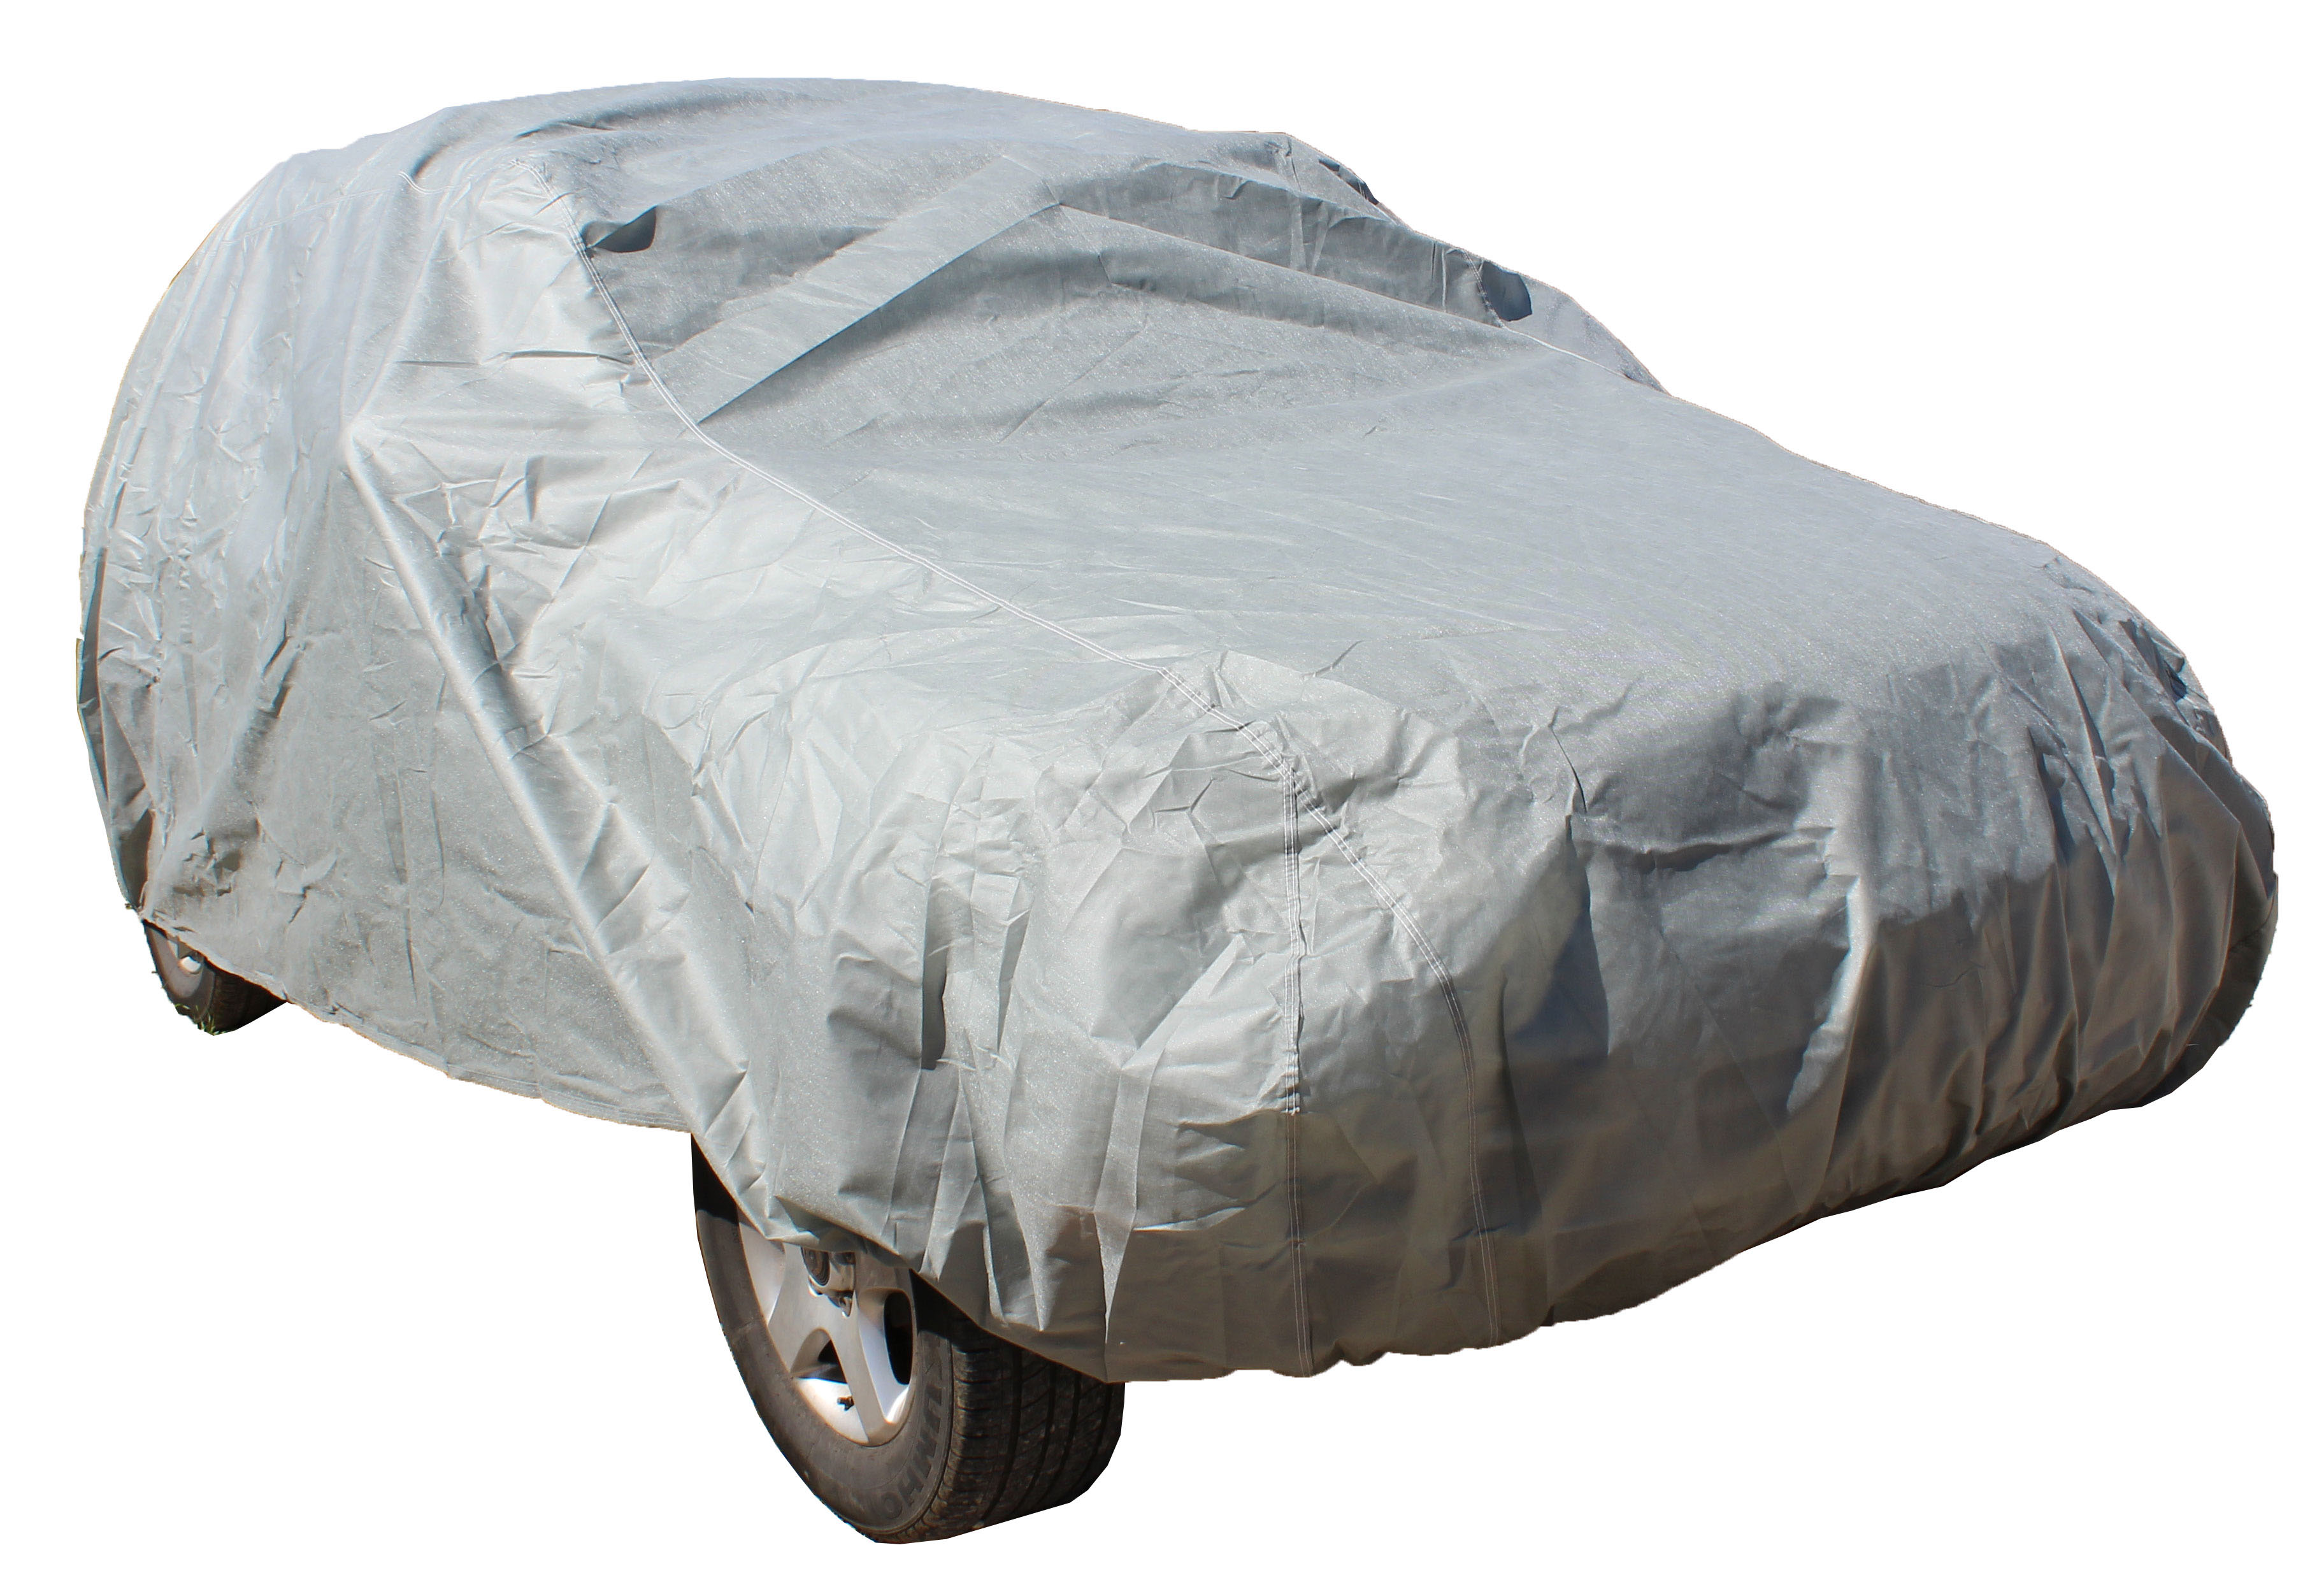 Honda Civic 6 layer Car Cover Fitted In Out door Water Proof Rain Snow Sun Dust